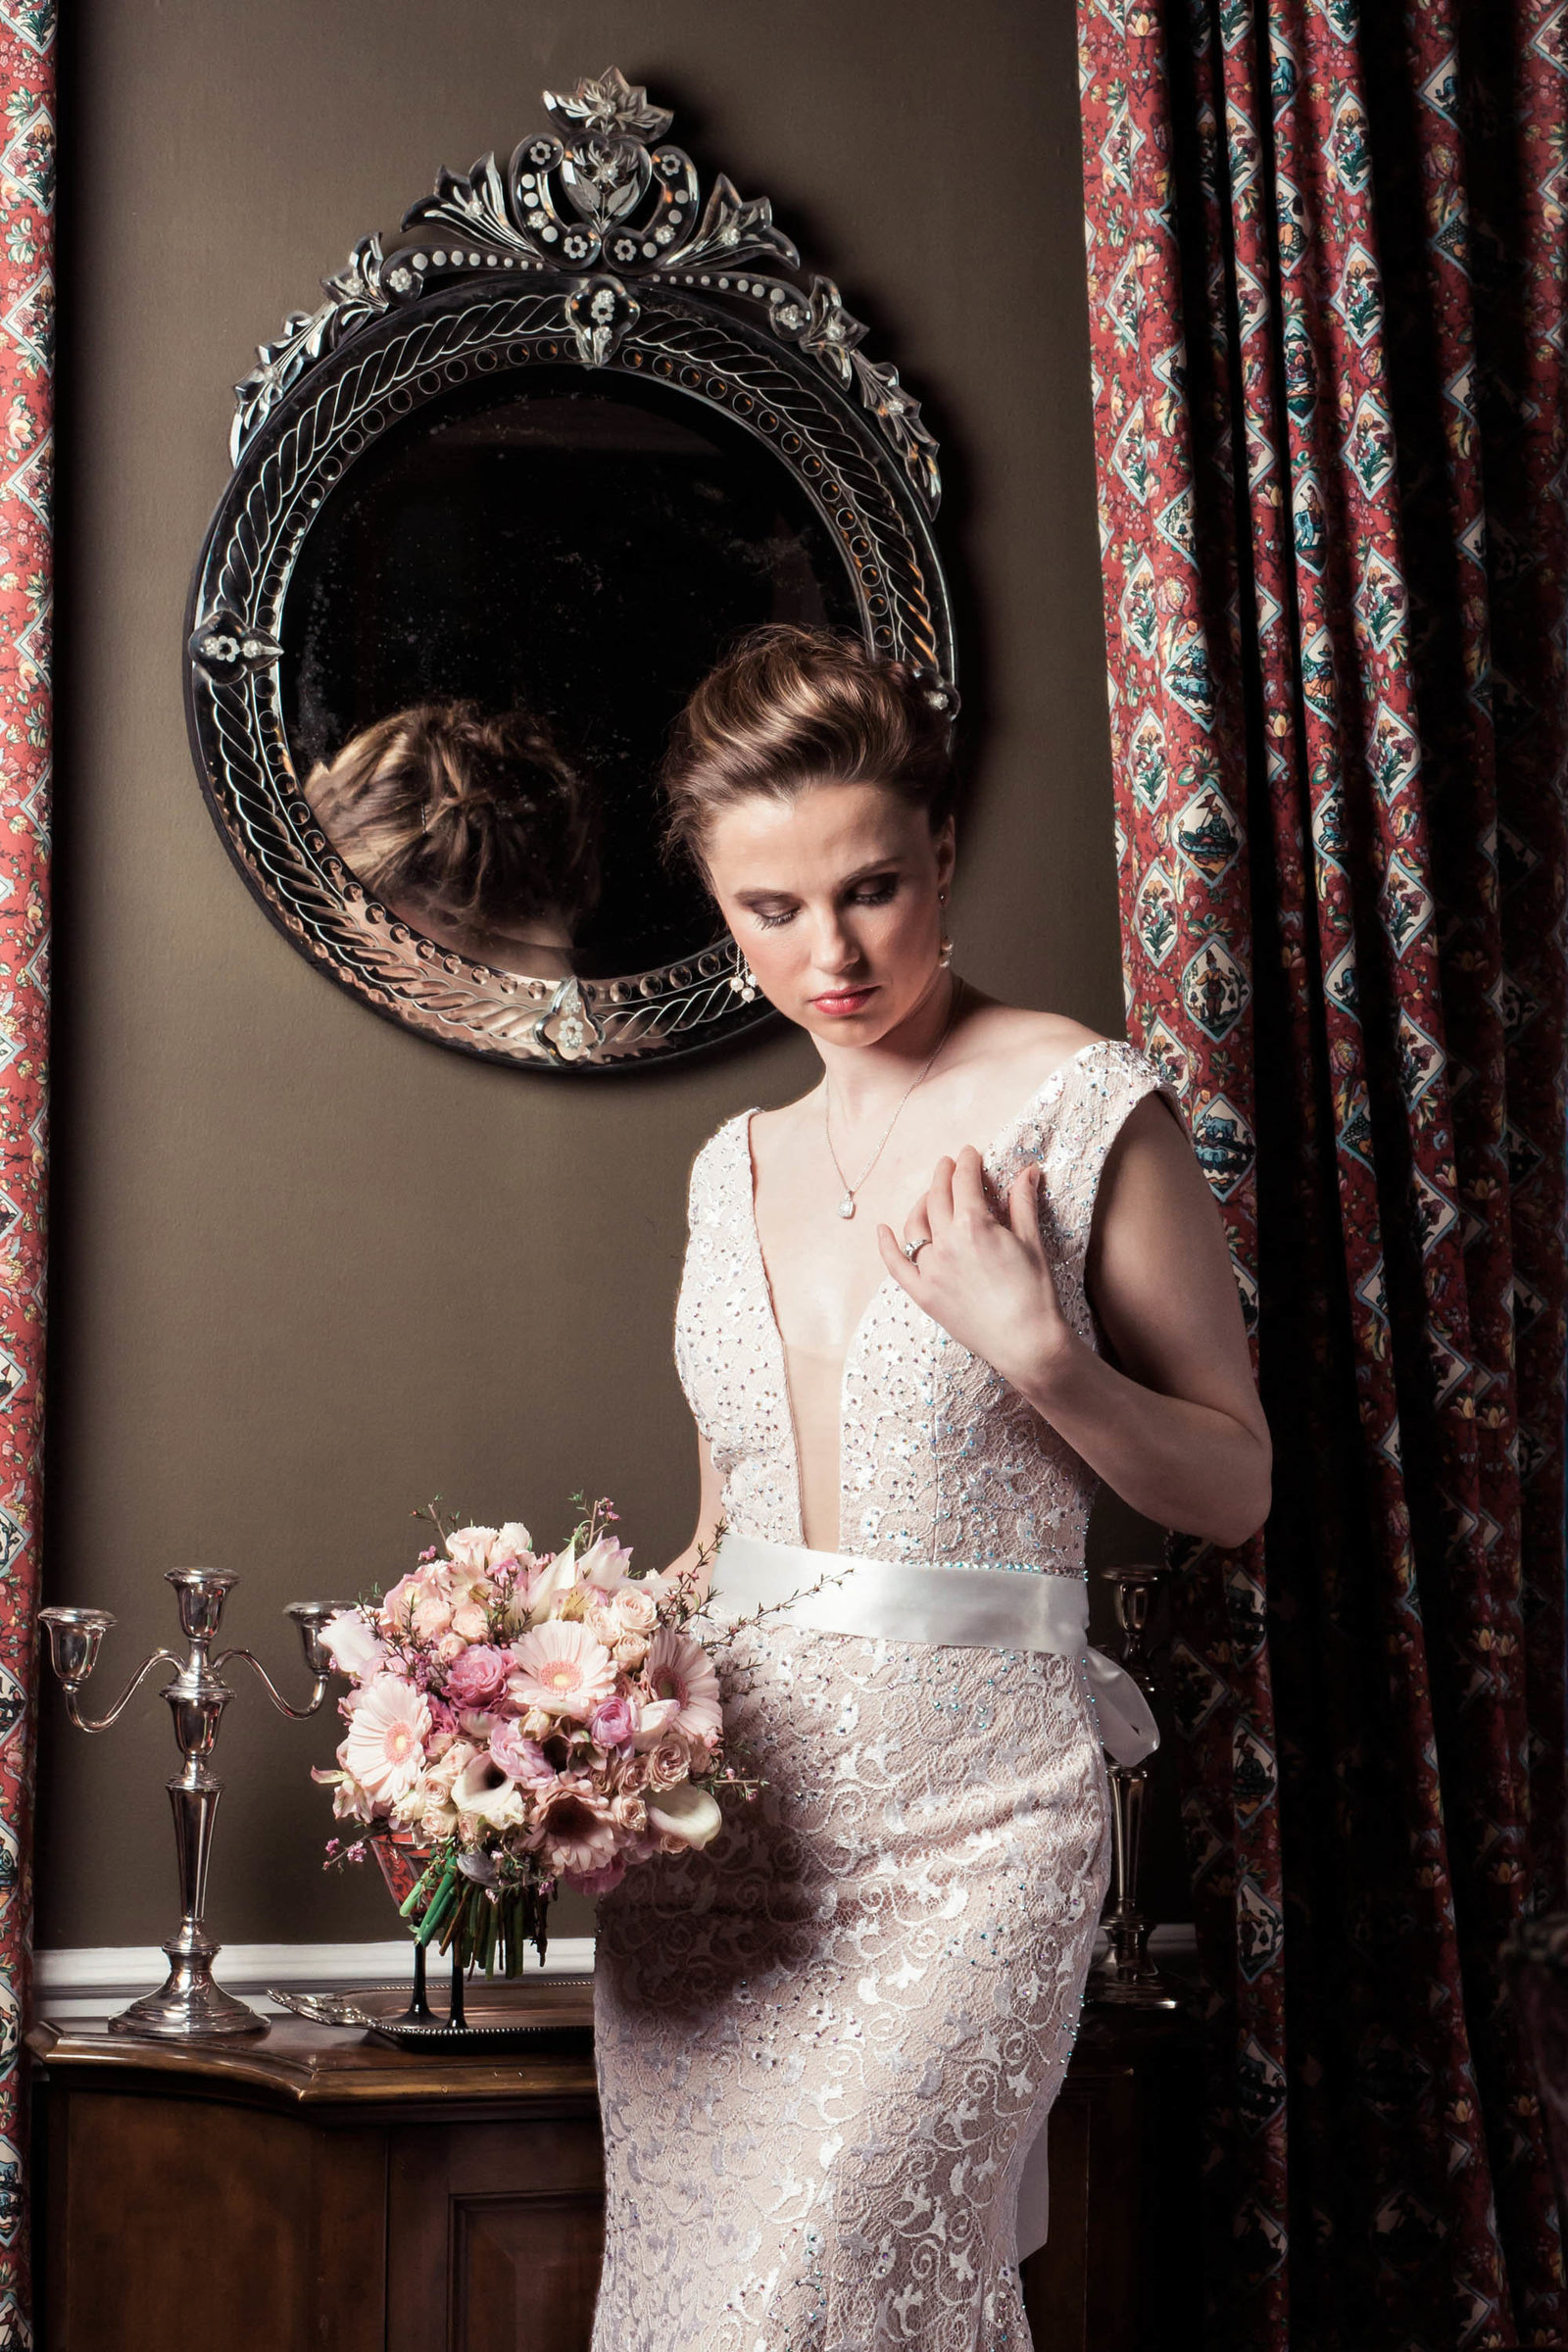 jovani-sweetwater-farm-winery-philadelphia-fashion-delaware-main-line-today-magazine-bridal-editorial-photography-kate-timbers244